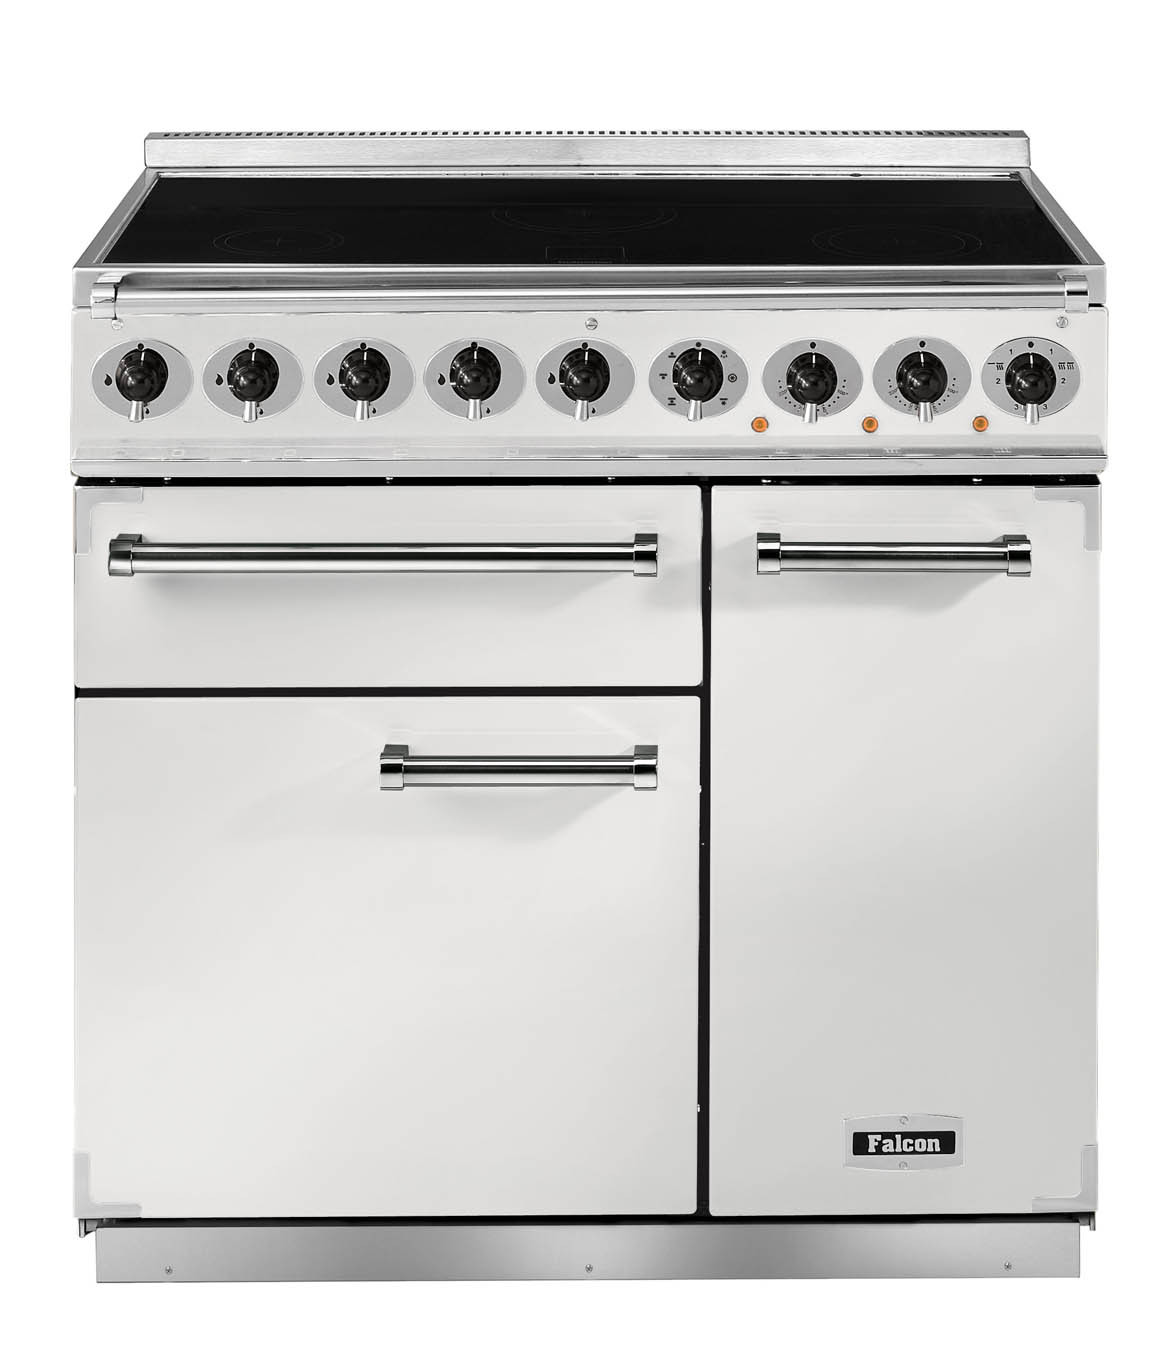 Falcon Deluxe 900 Induction Ice White/Nickel Range Cooker